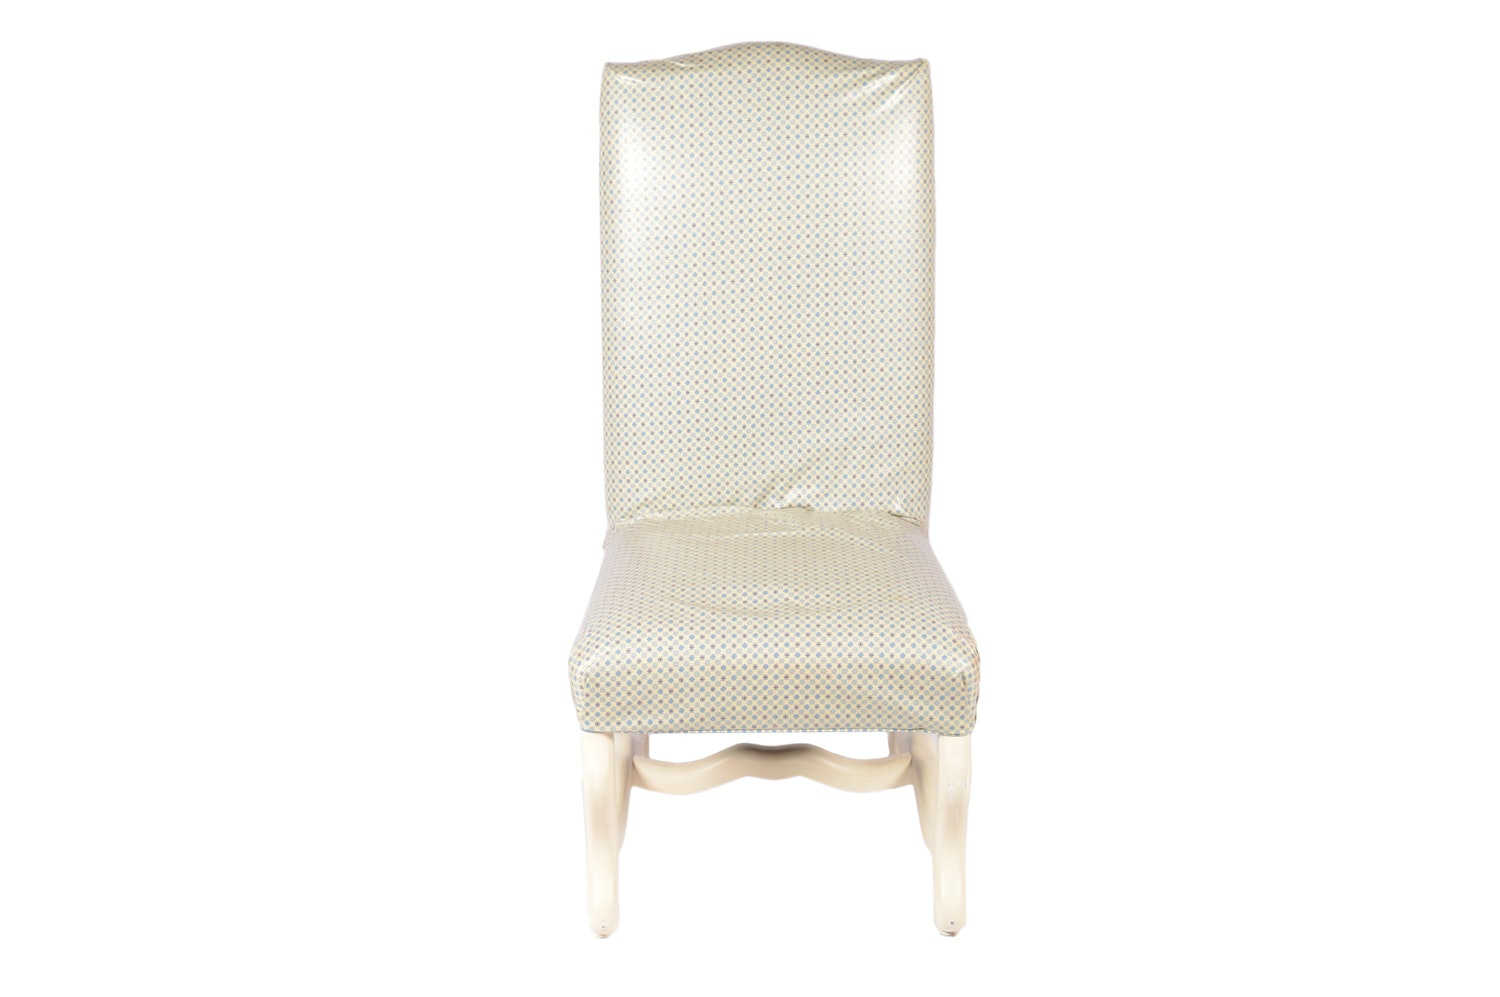 Louis XIII Style Upholstered Side Chair, 21st Century